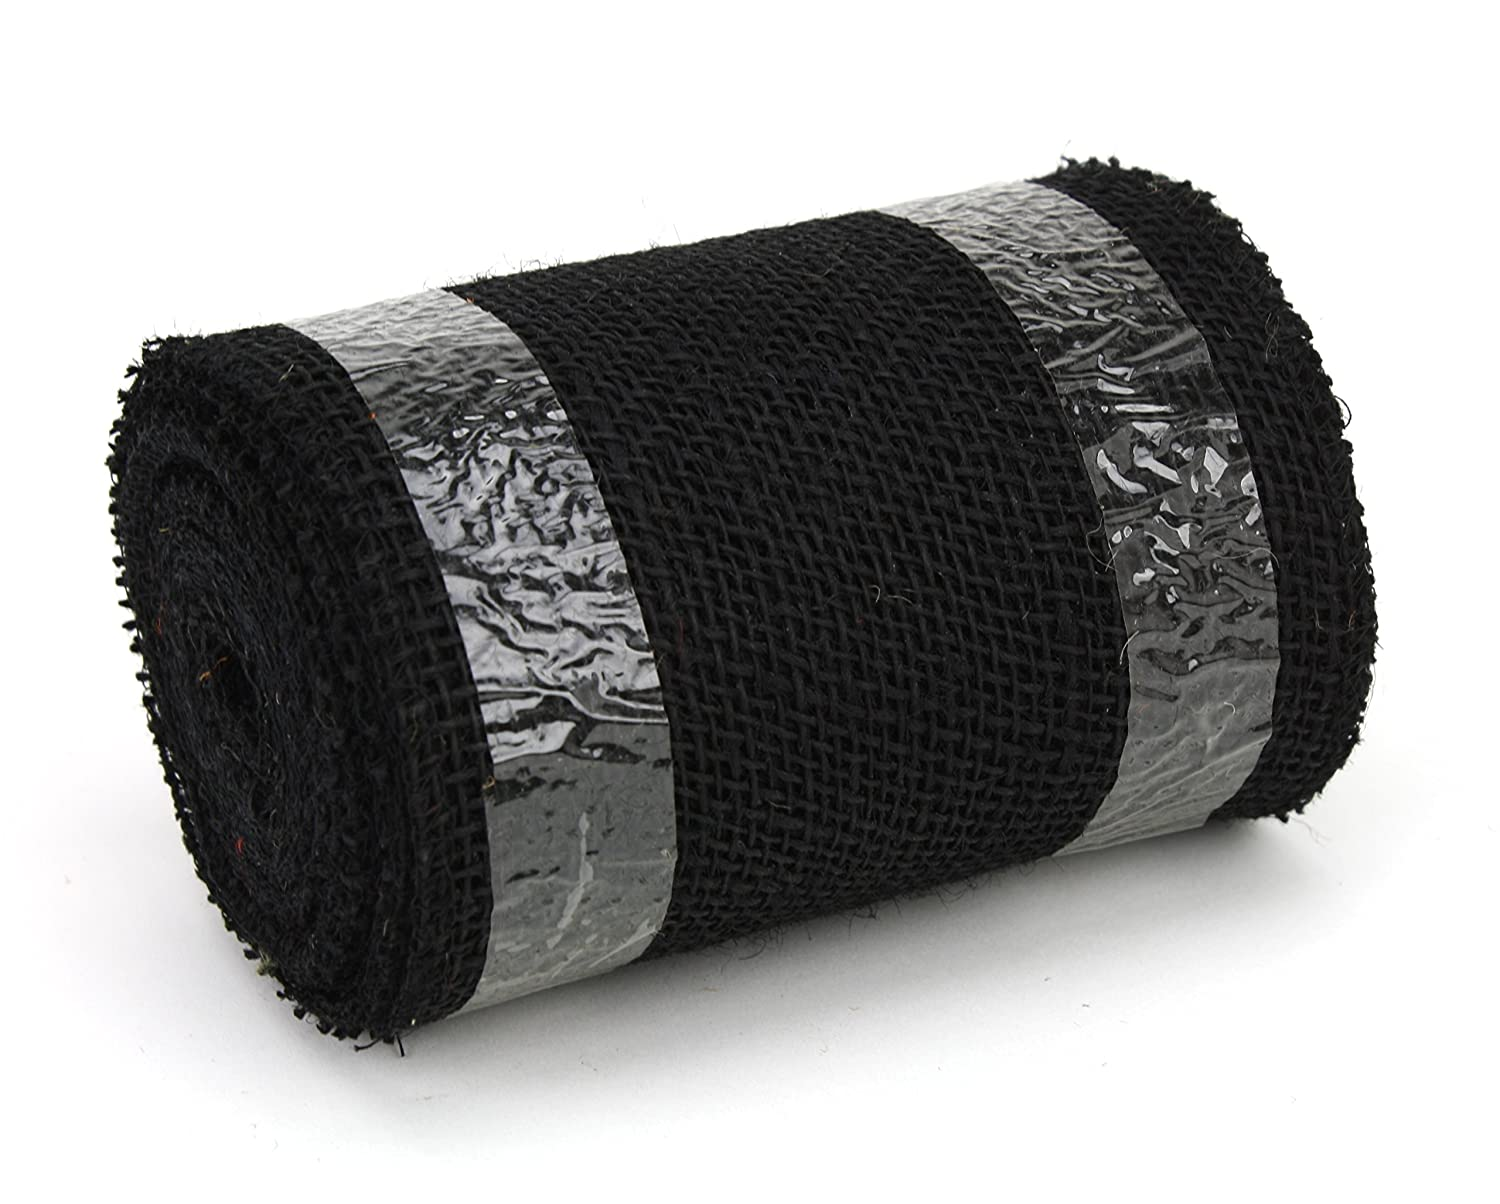 Kel-Toy Jute Burlap Ribbon Black 6 by 10 yd